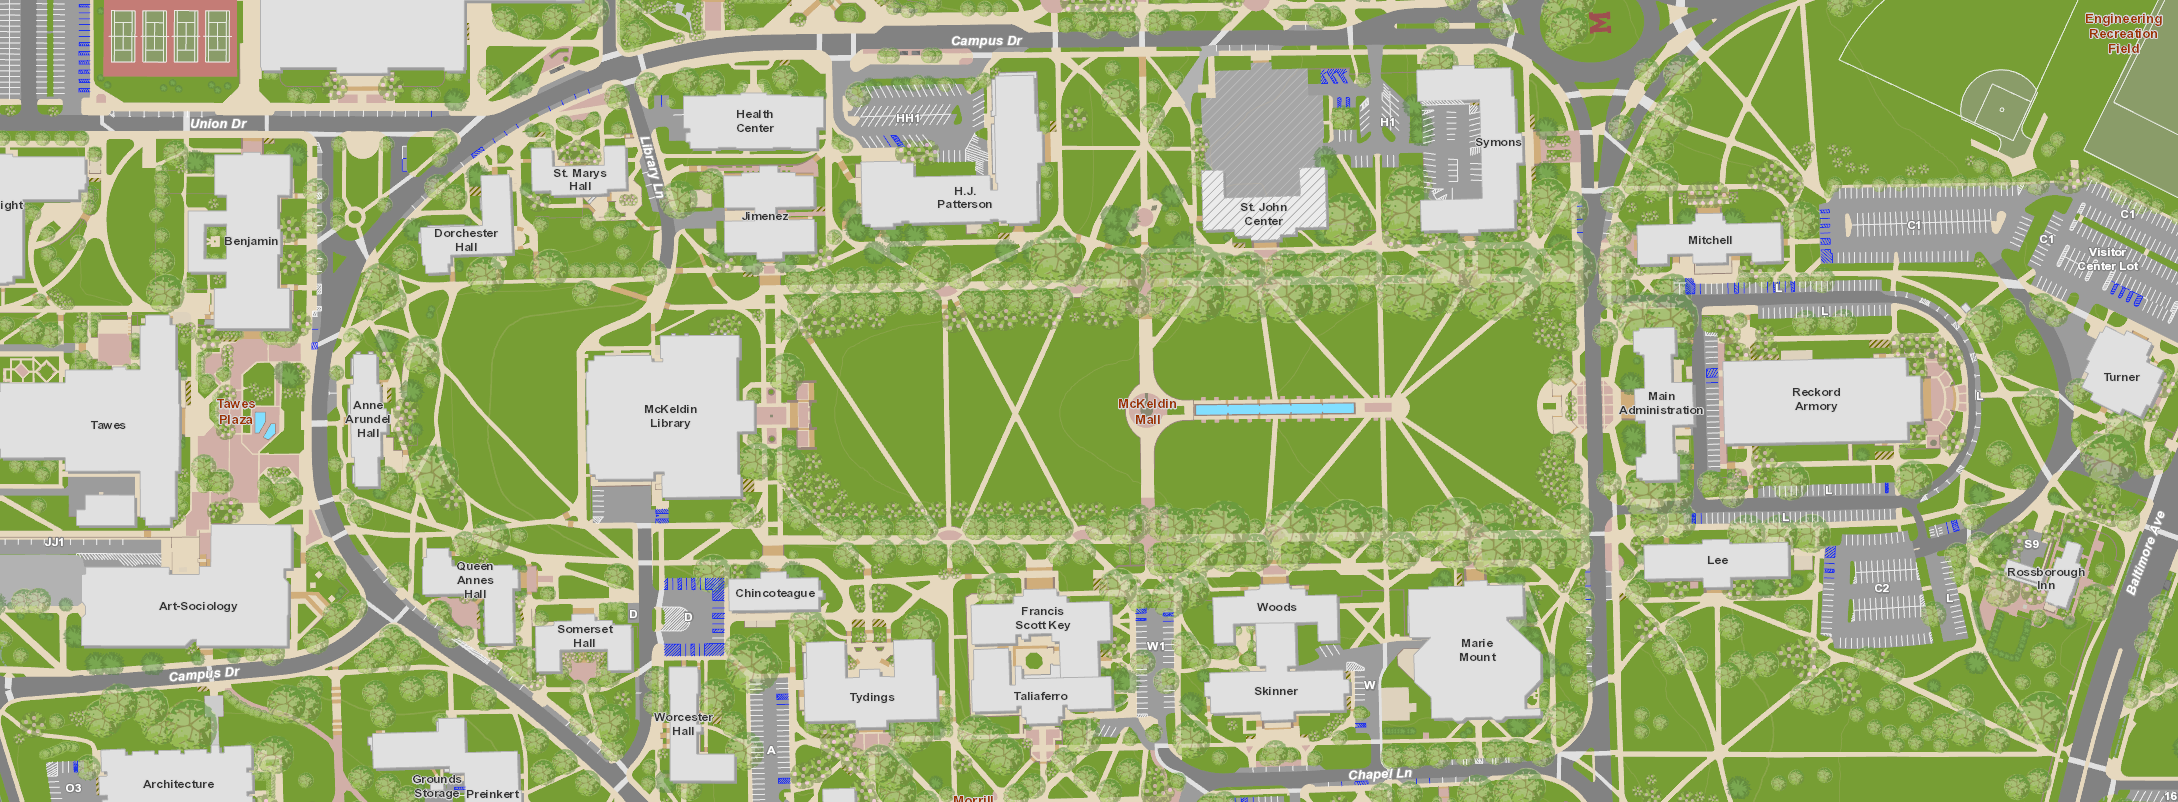 University Of Maryland Campus Map Cyndiimenna